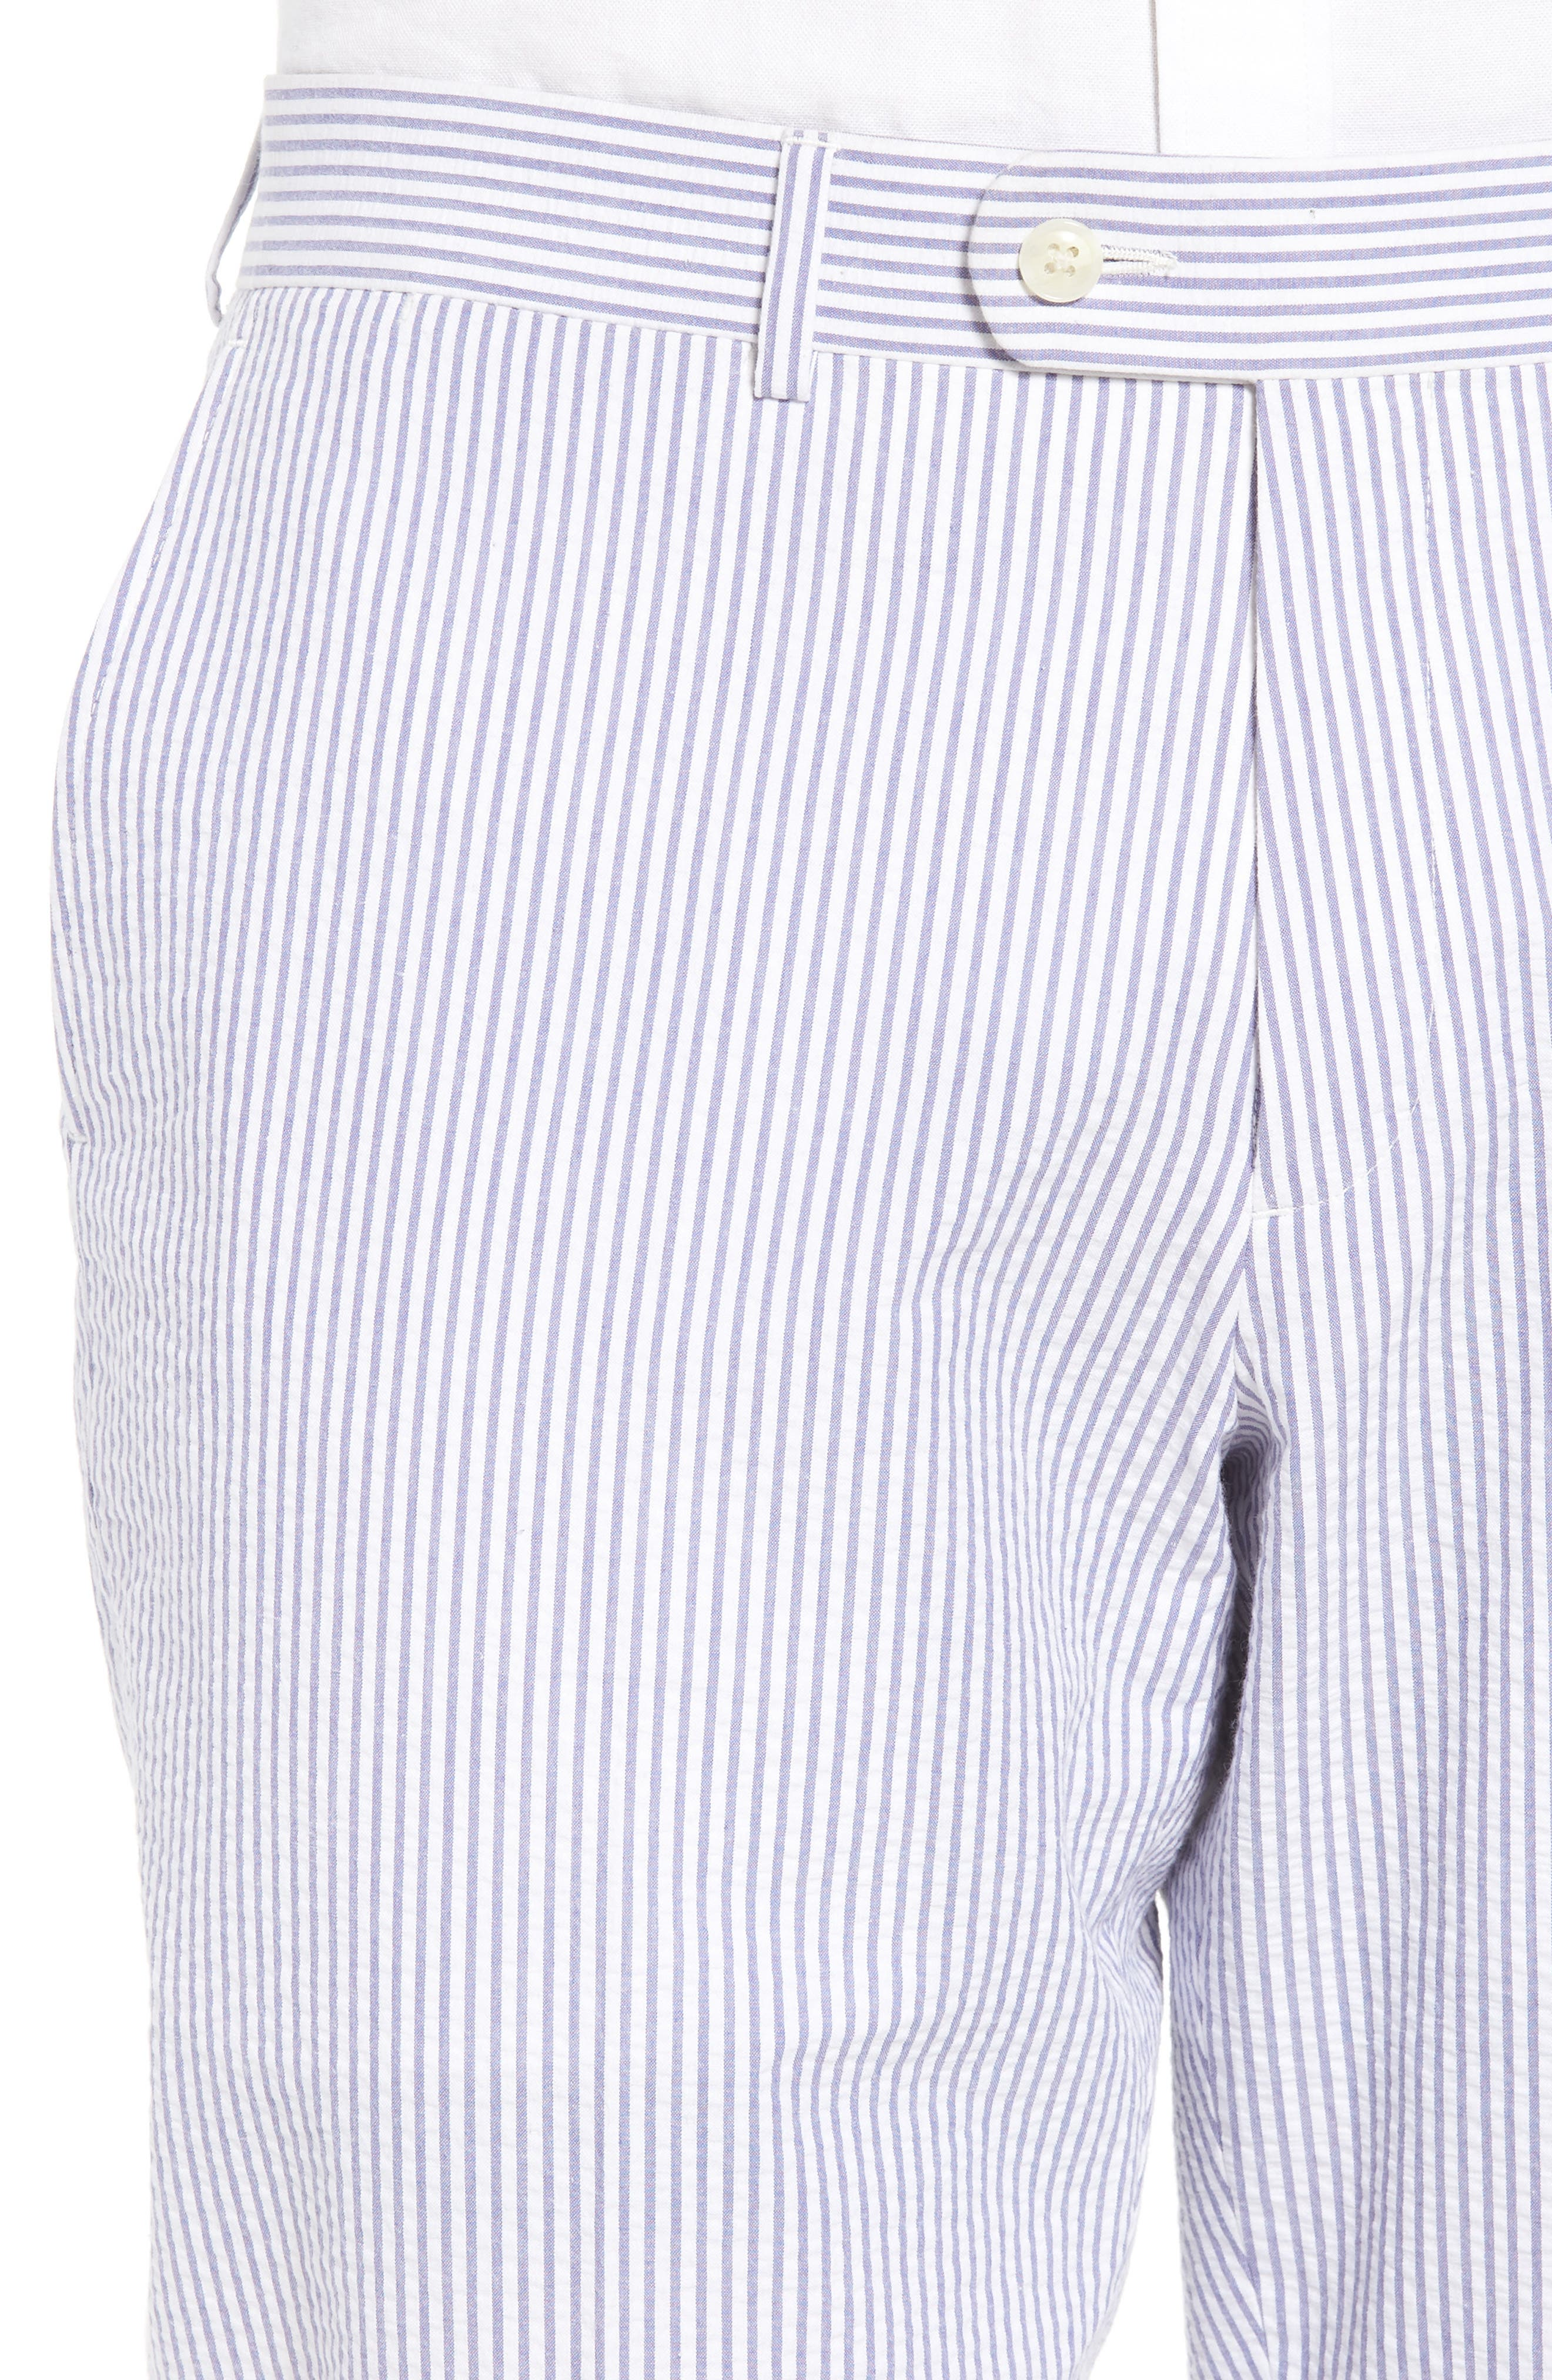 Andrew AIM Flat Front Seersucker Trousers,                             Alternate thumbnail 4, color,                             Blue And White